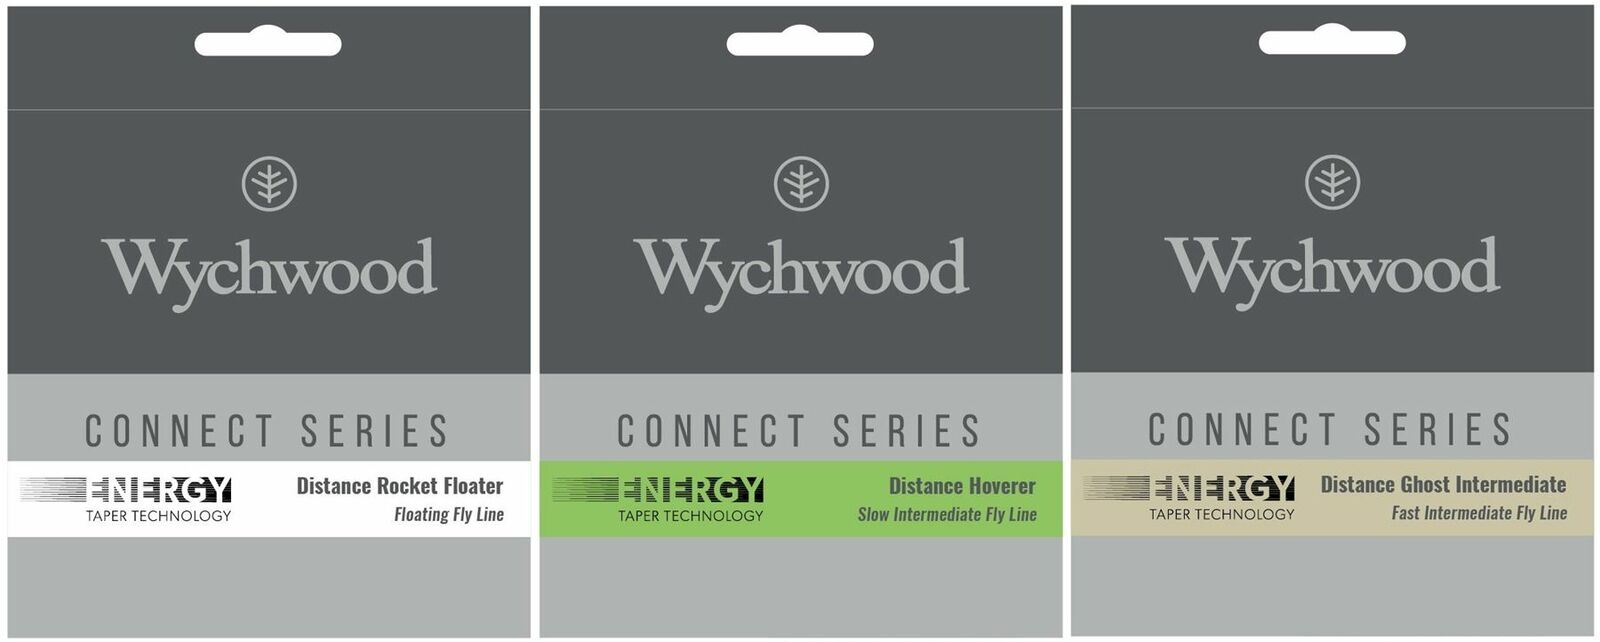 Wychwood  Energy Taper Fly Fishing Lines  official quality